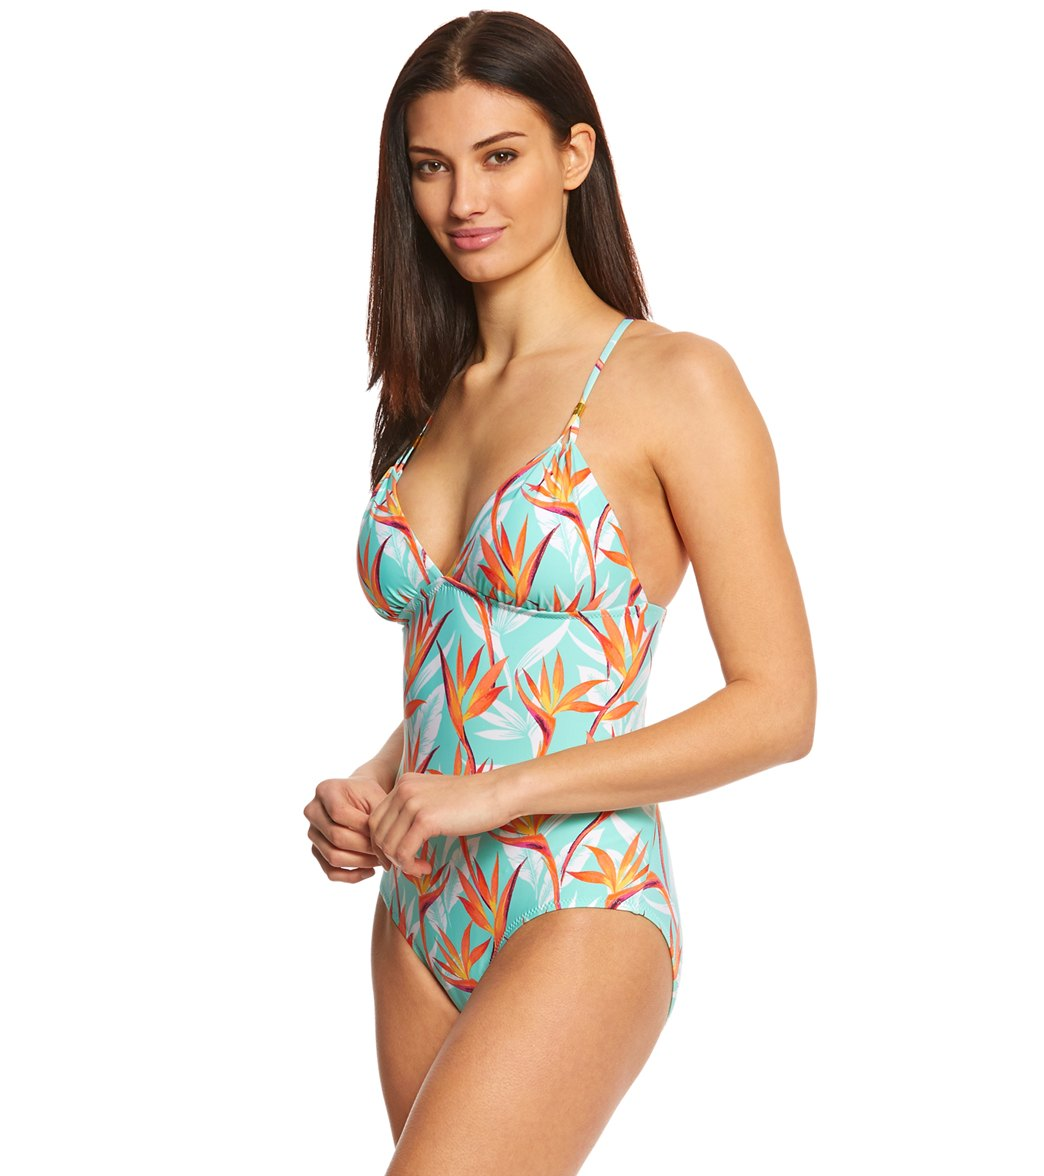 7ebf64684c Helen Jon Fire Island Lattice Back One Piece Swimsuit at SwimOutlet ...